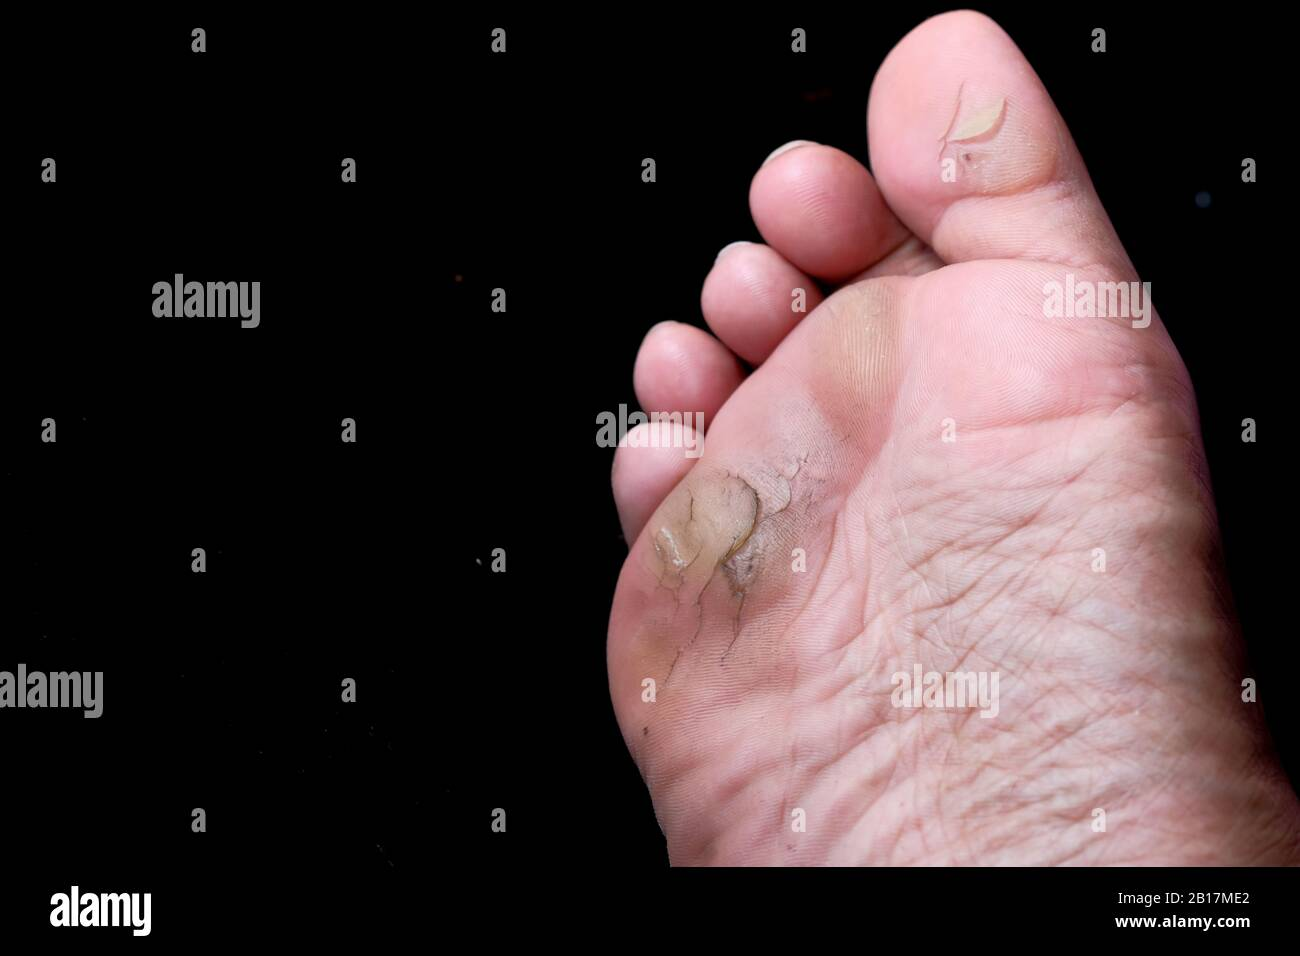 Foot Fungus High Resolution Stock Photography And Images Alamy